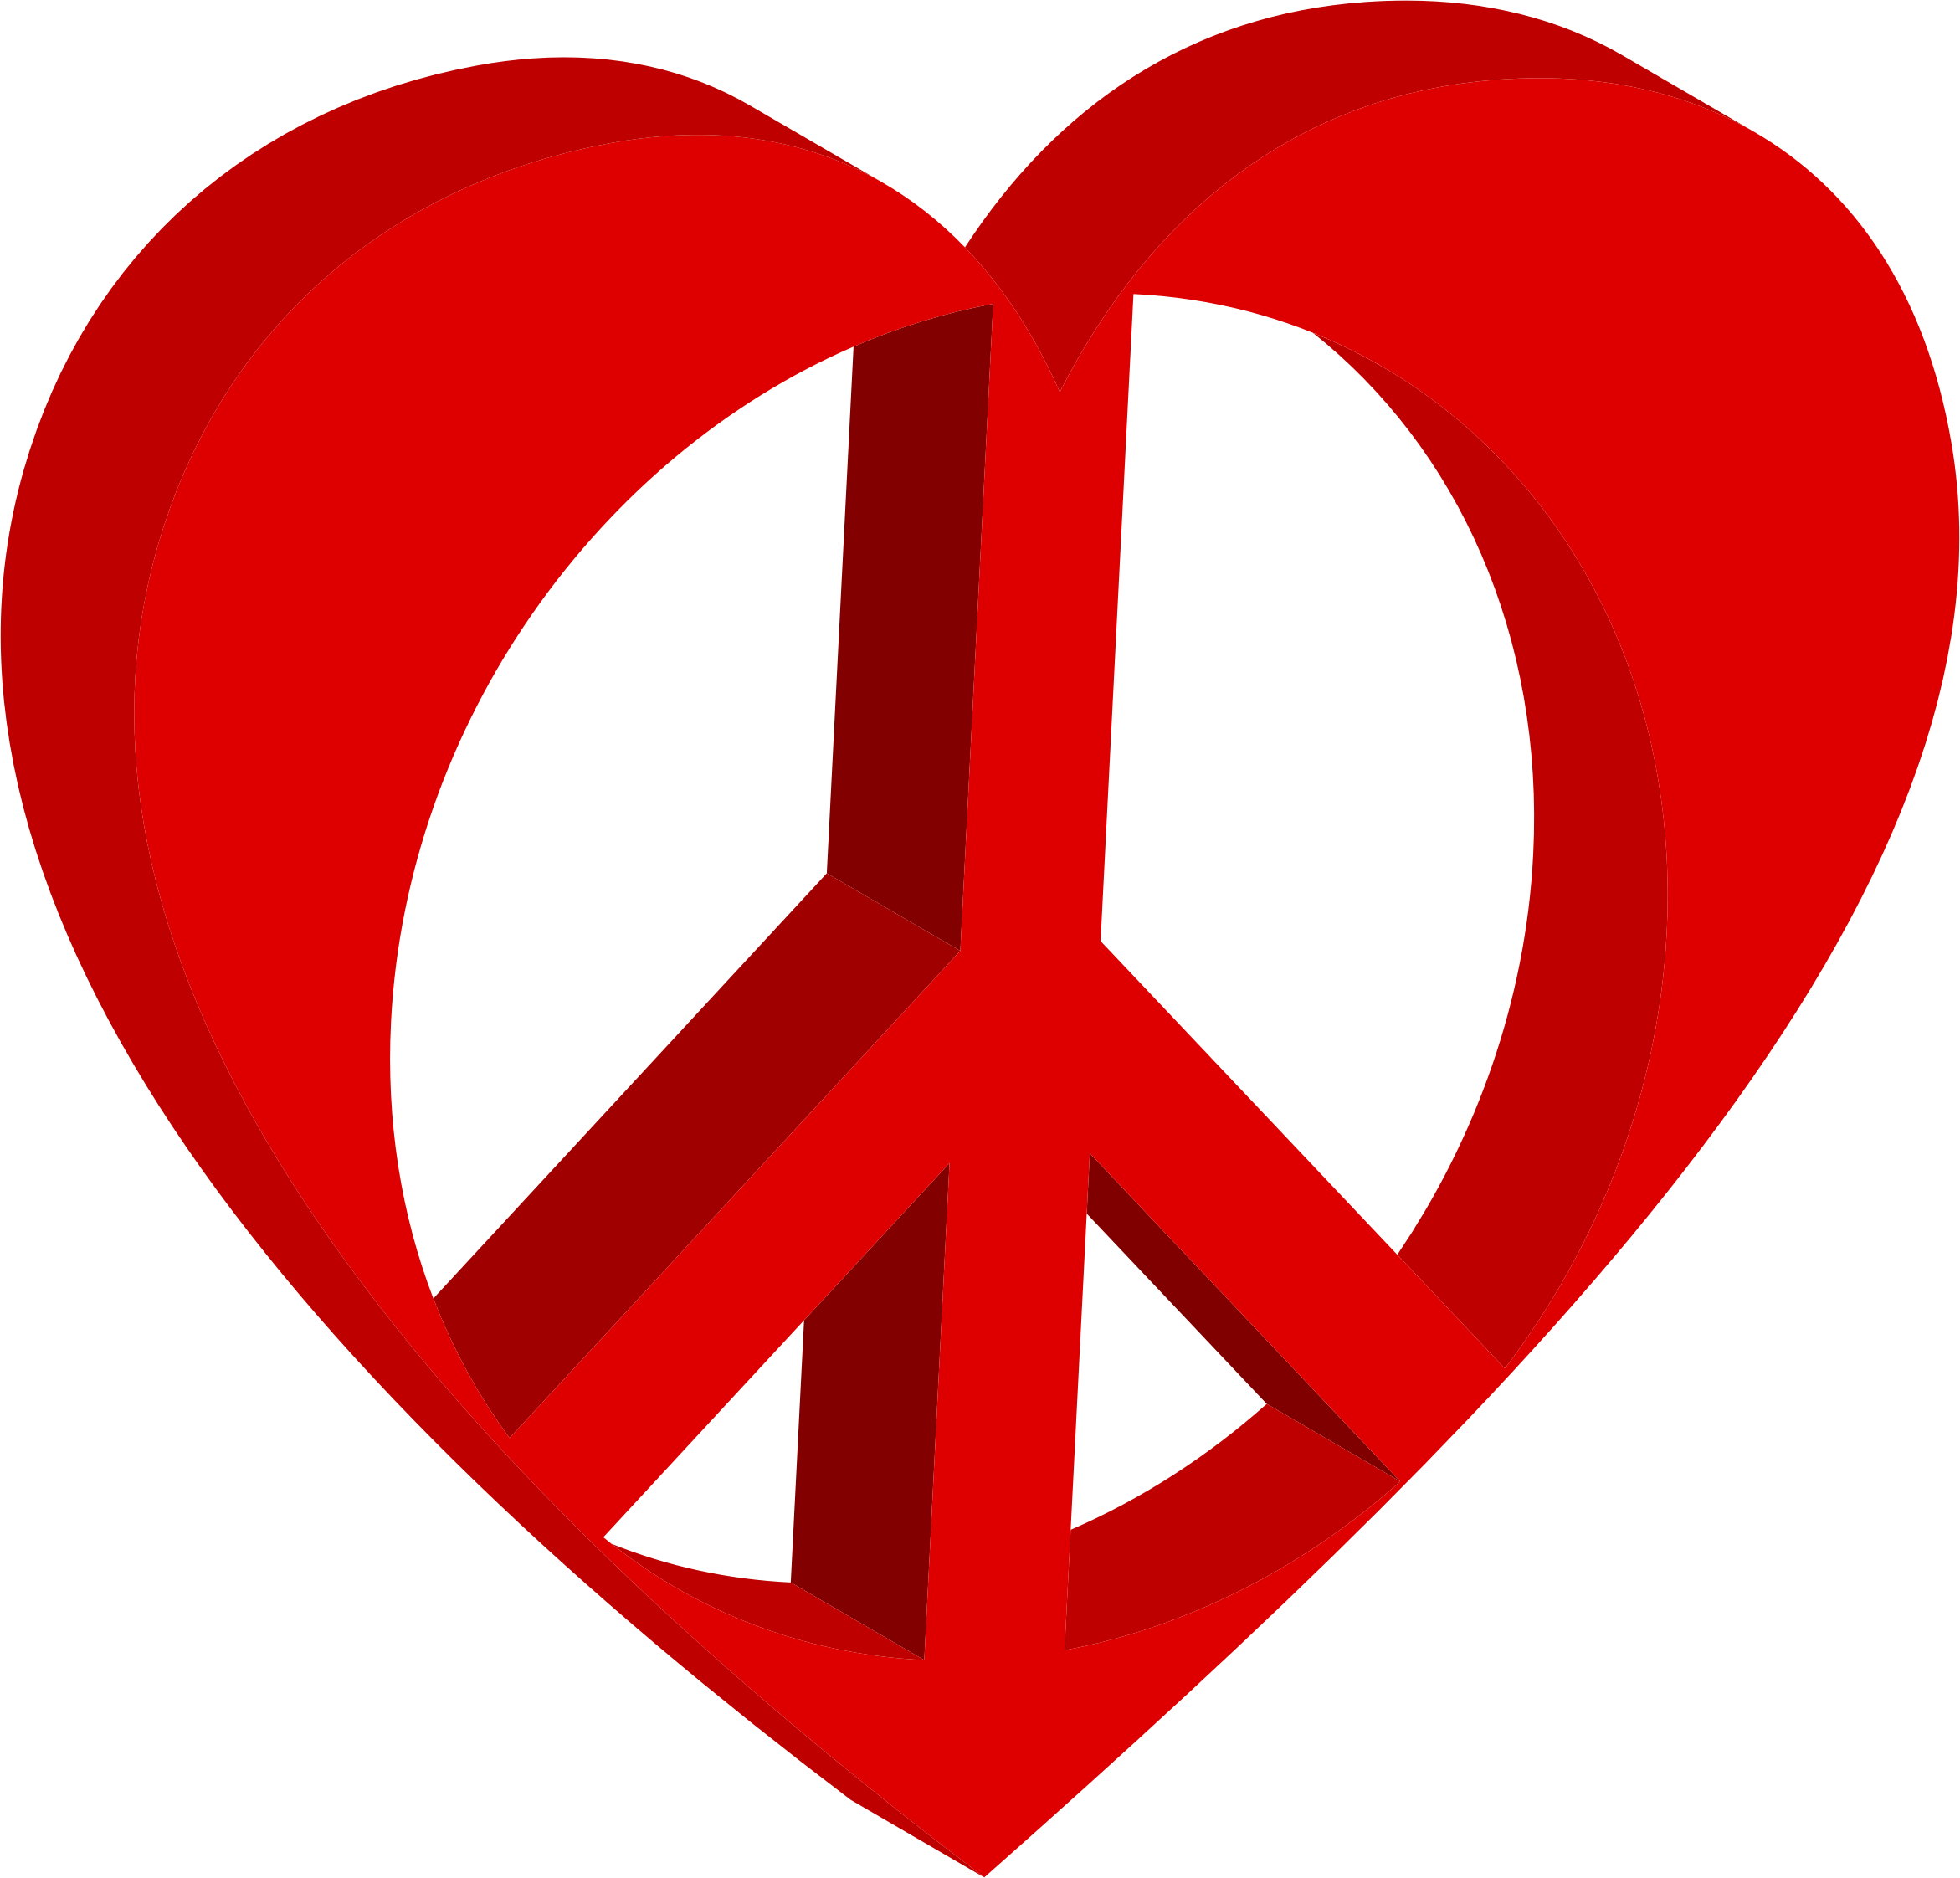 Peace sign aol image search results search results biocorpaavc